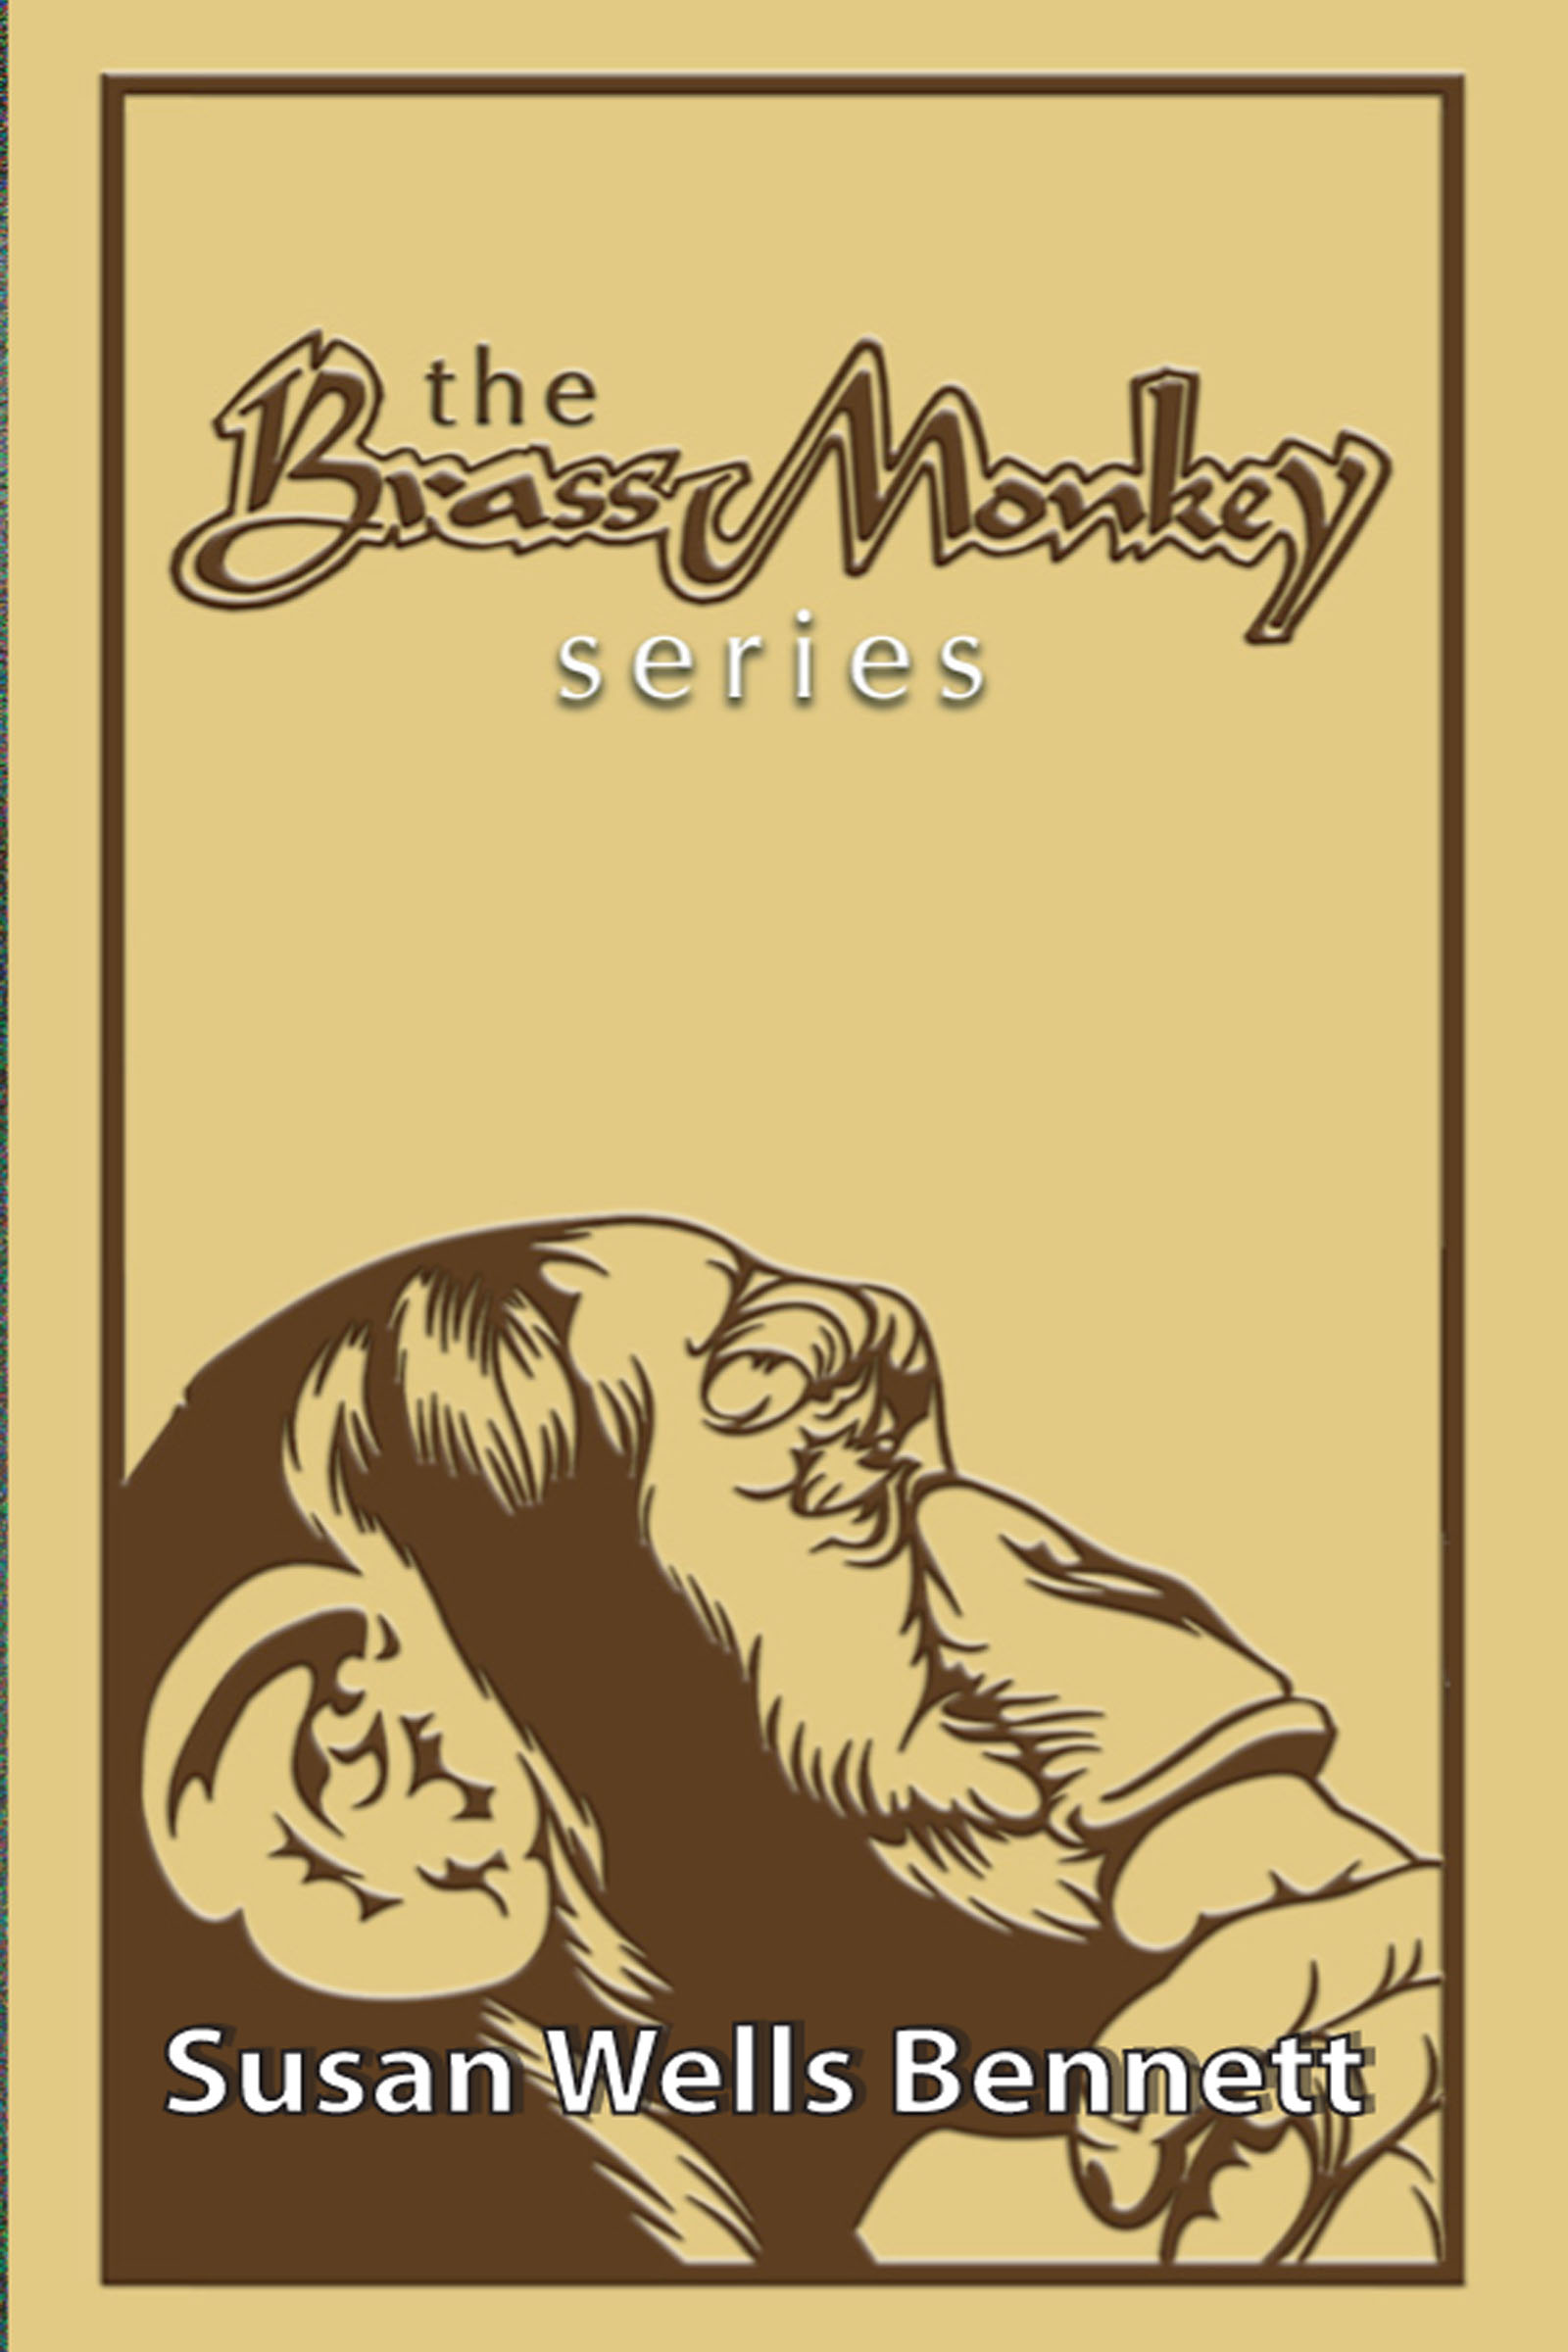 The Brass Monkey Series